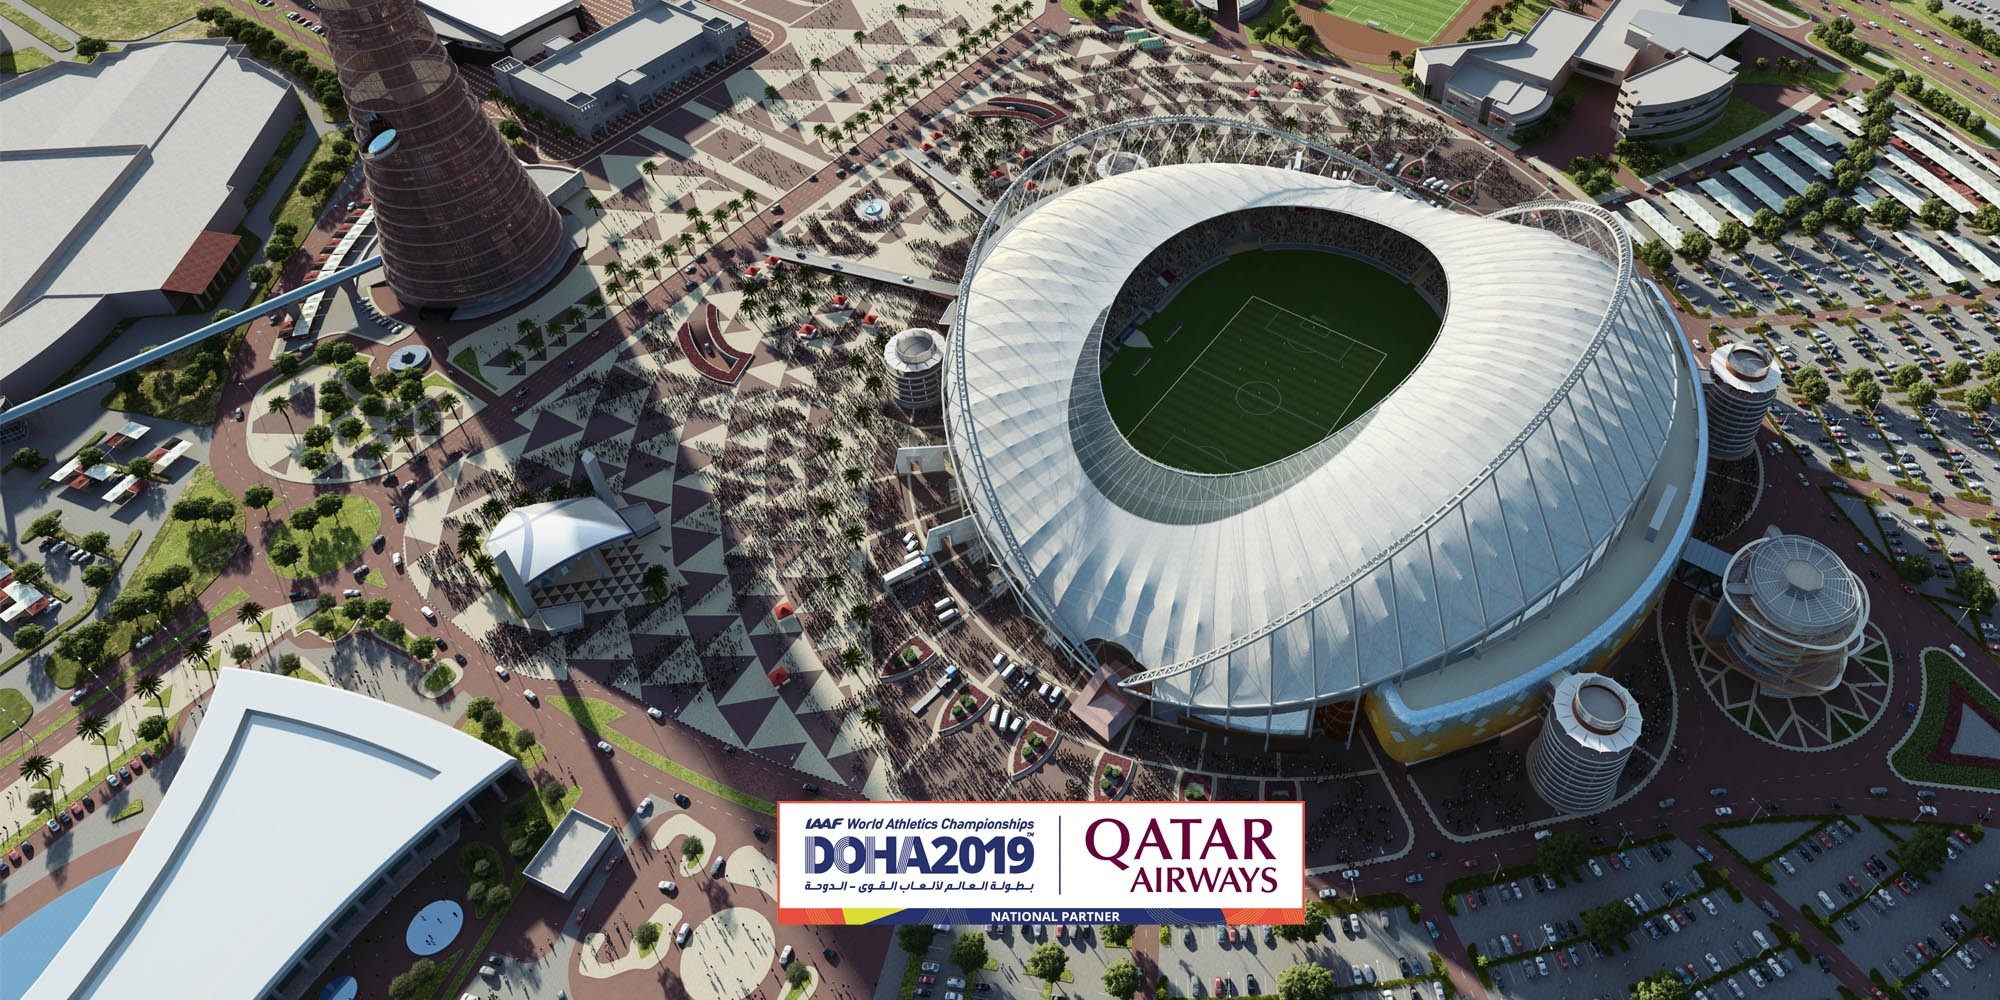 Big Prize money awaits athletes at World Athletics Championships Doha with over 7.5 million US dollars on the line